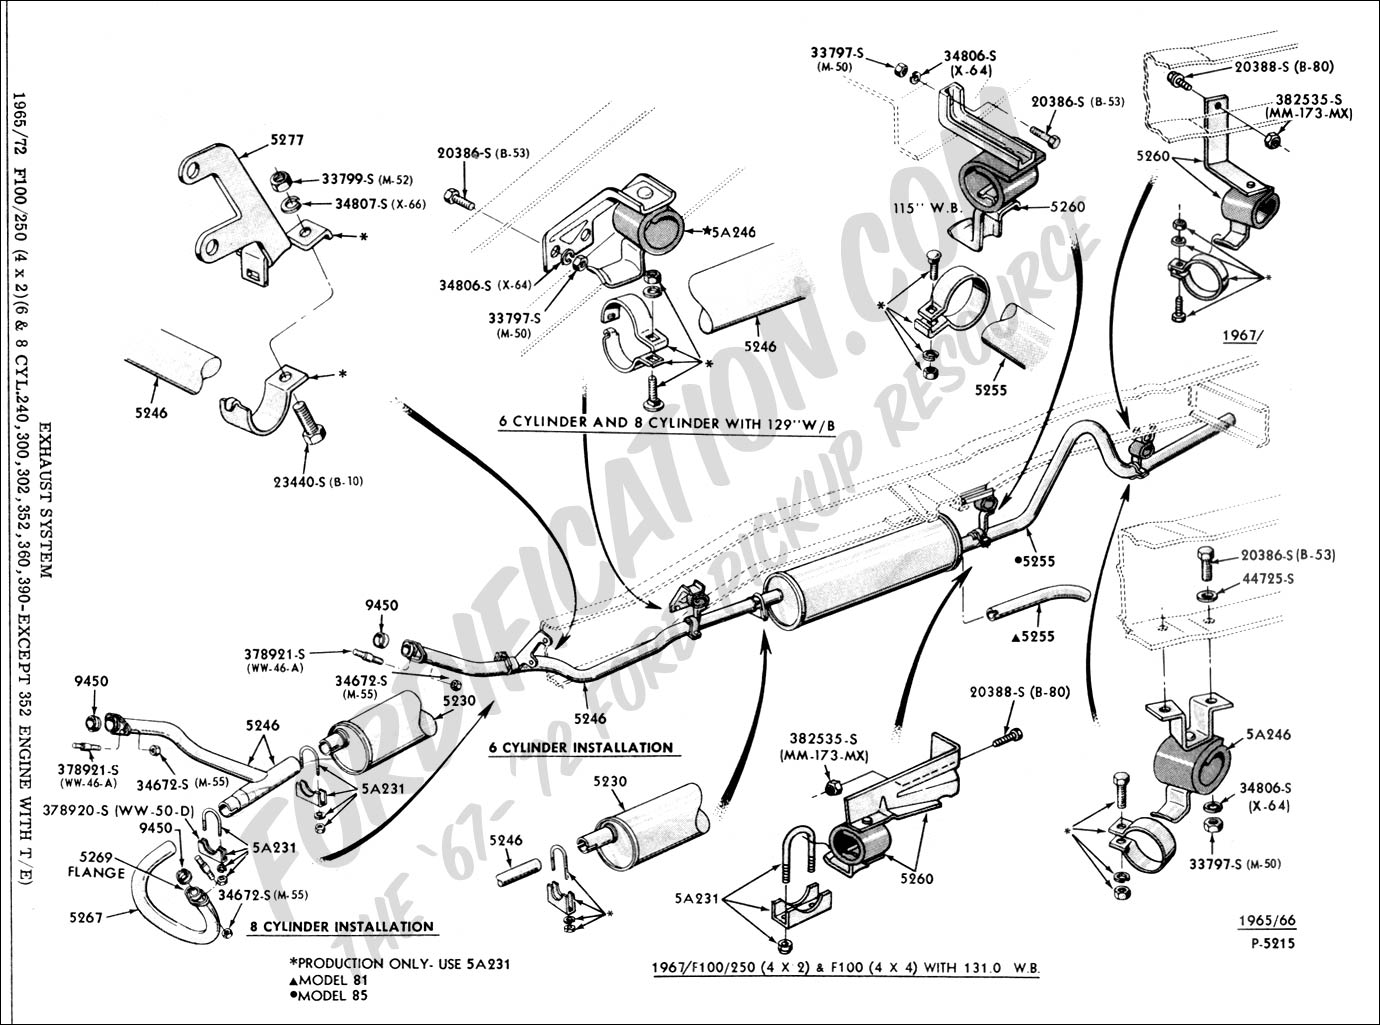 1966 f150 exhaust diagram wiring info ford truck technical drawings and schematics section e engine rh fordification com 2001 ford f 150 exhaust system diagram 1994 f150 exhaust diagram sciox Gallery